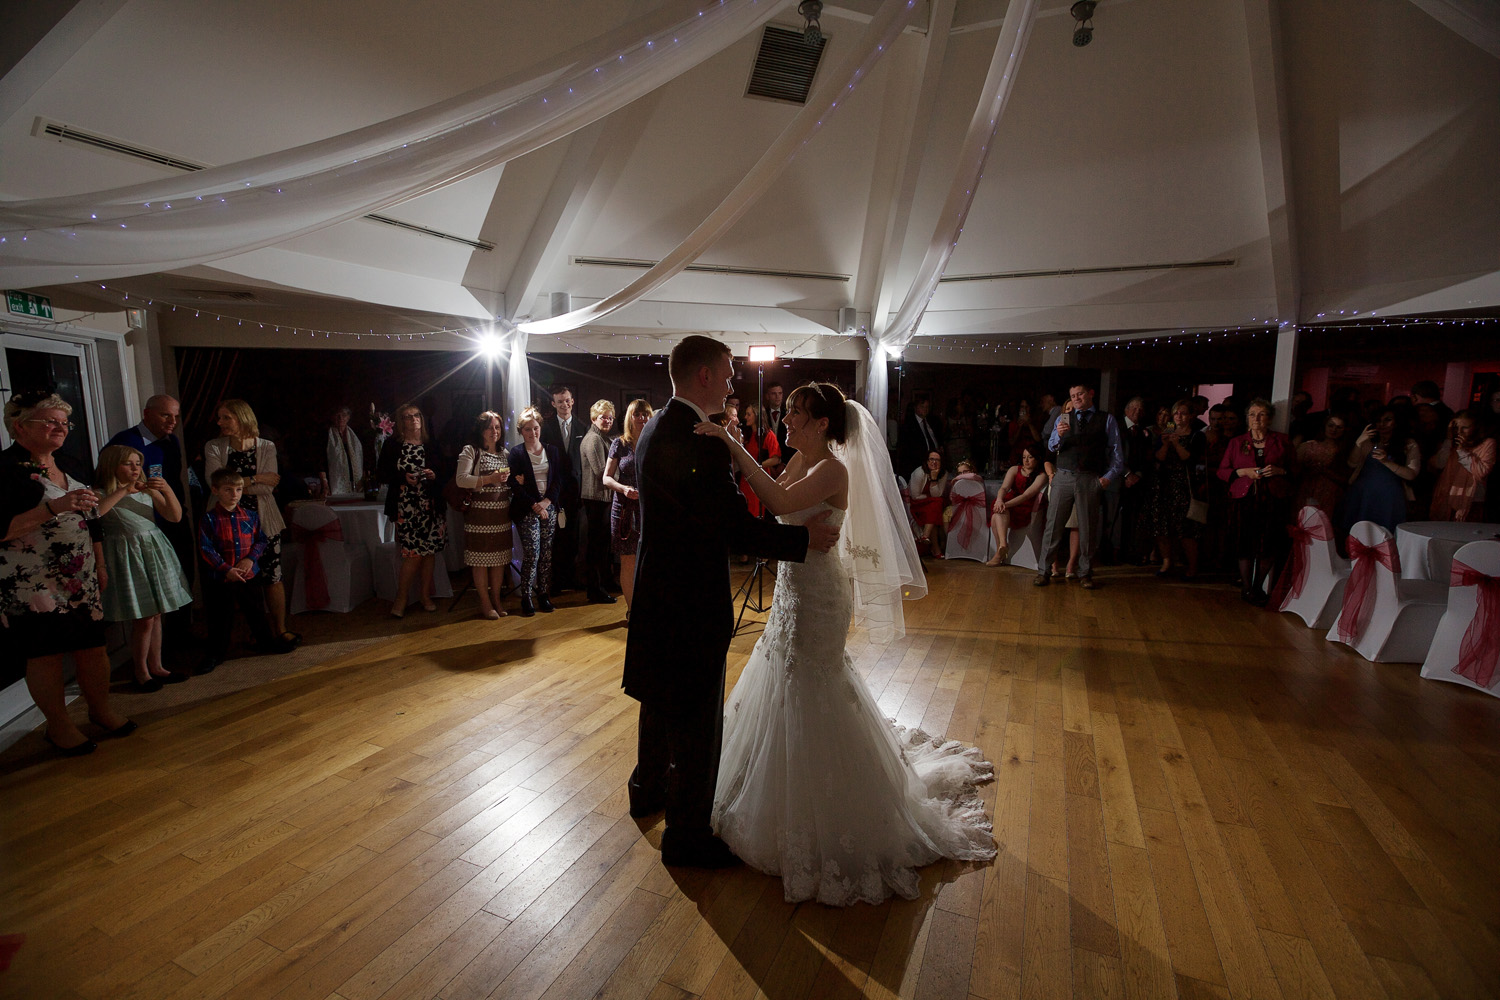 Sandford_Springs_Wedding_Photographer_Newbury_044.jpg